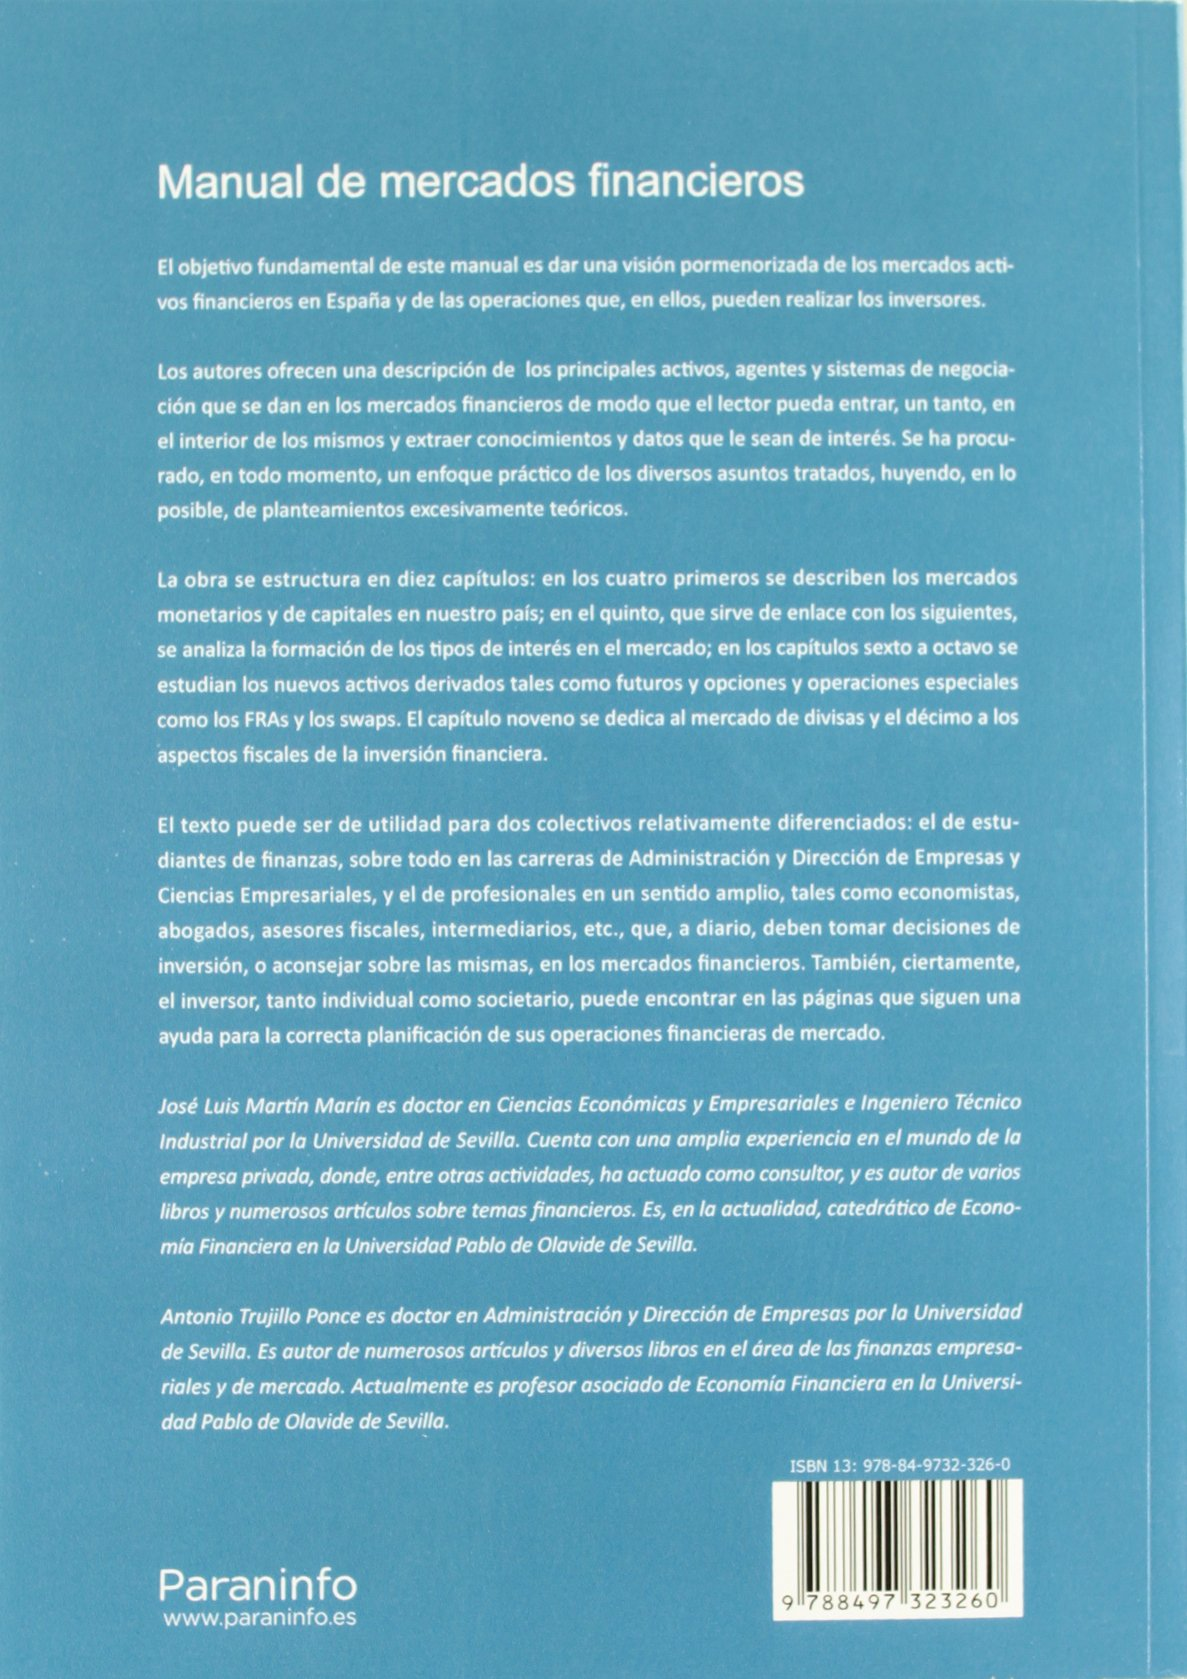 Manual de Mercados Financieros (Spanish Edition)